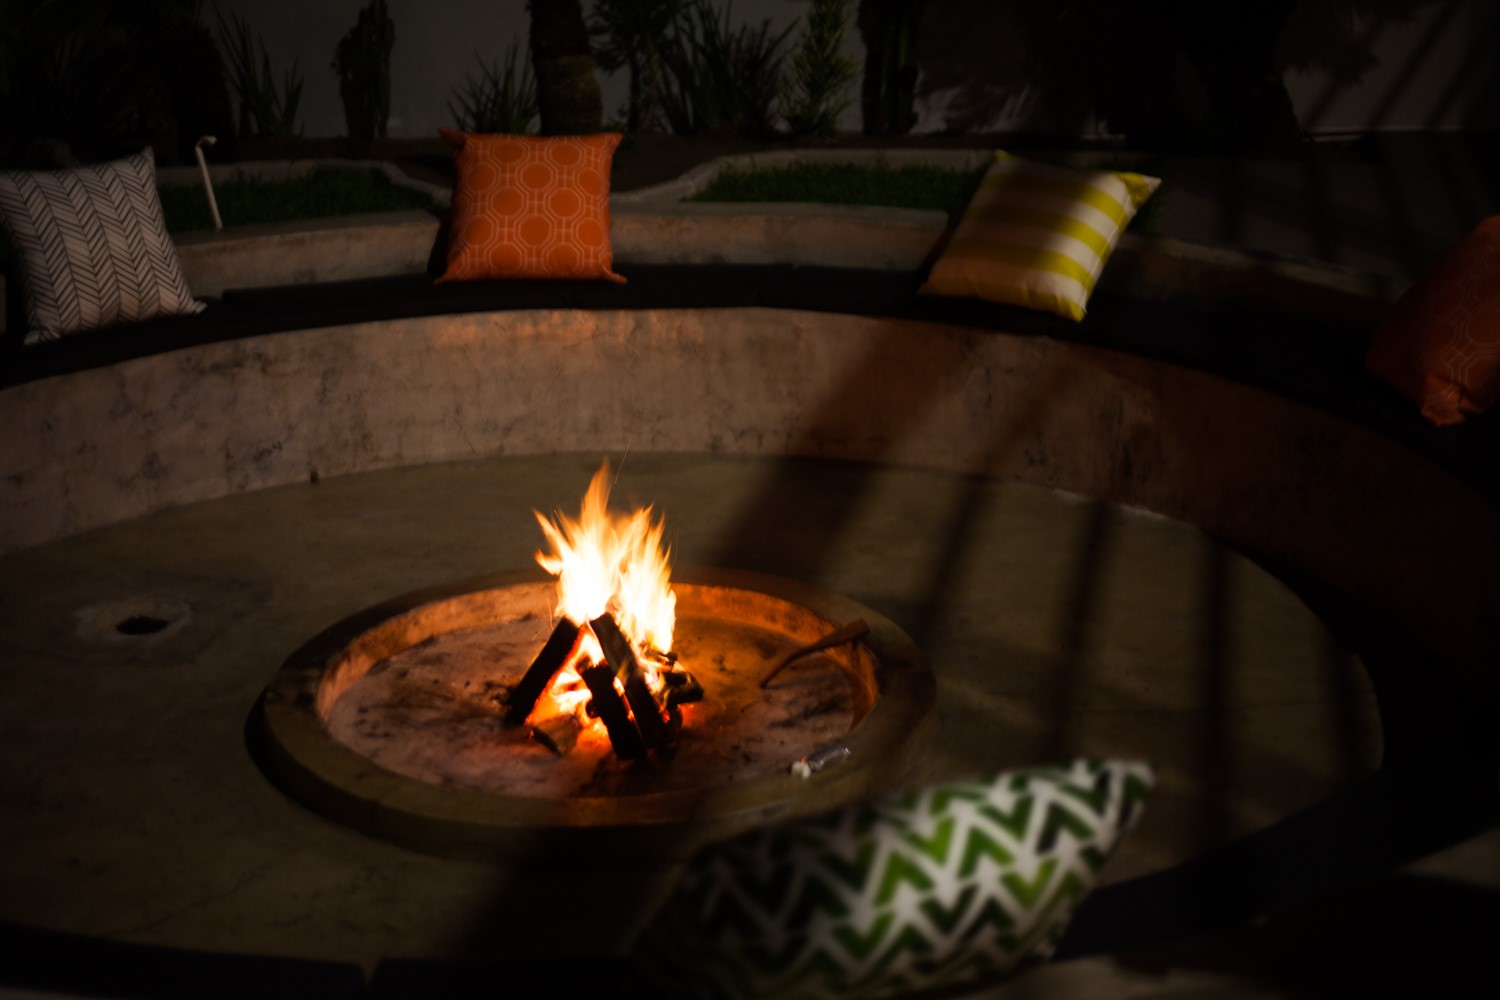 You need feel-good stories in Umhlanga Rocks with flames, smoke, sardines and spices.